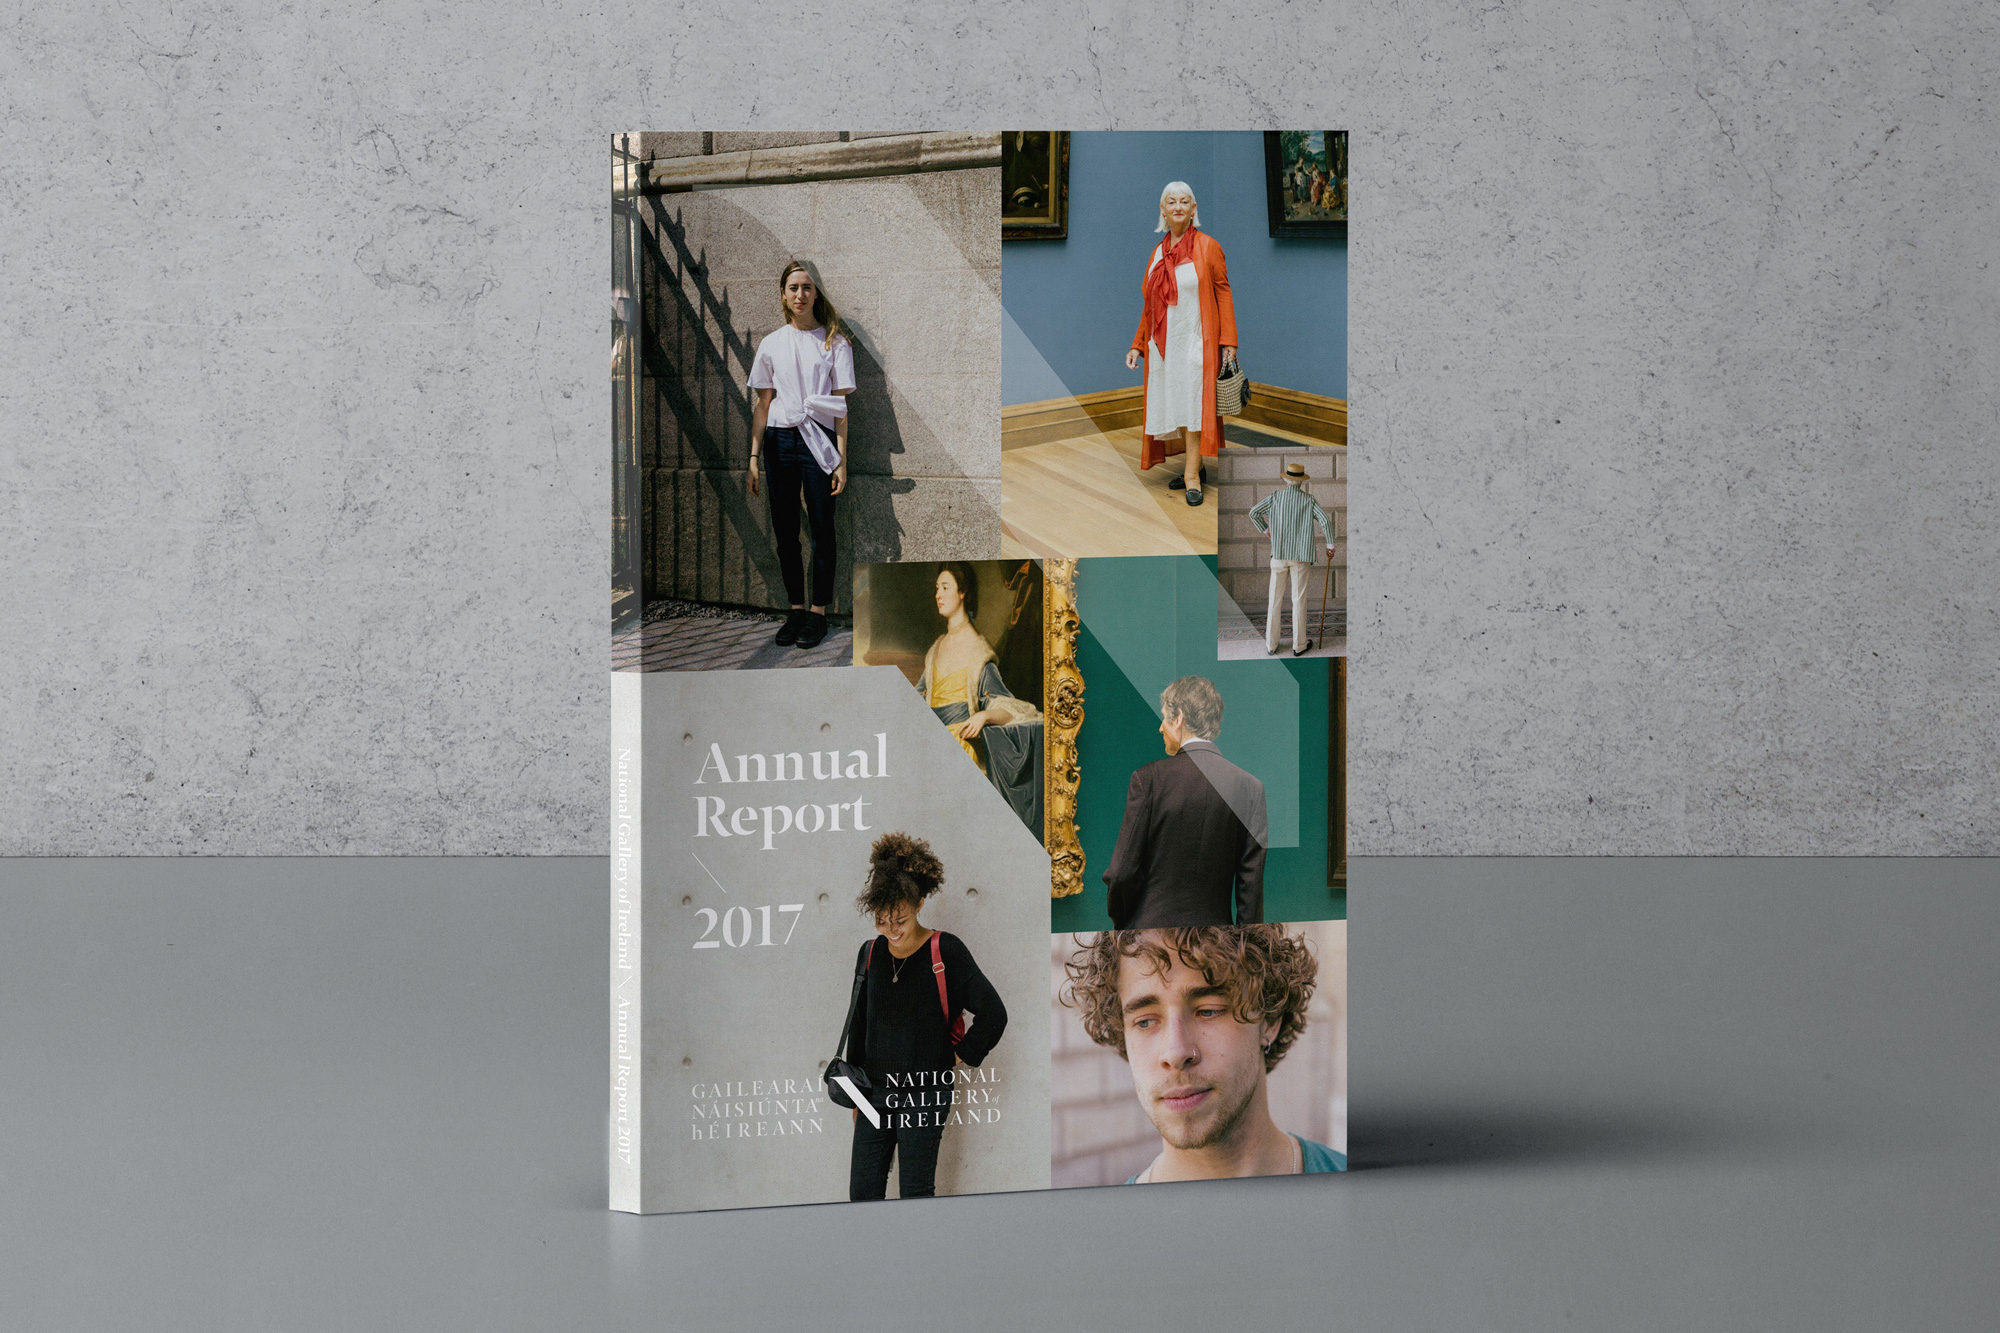 Cover image: National Gallery of Ireland Annual Report